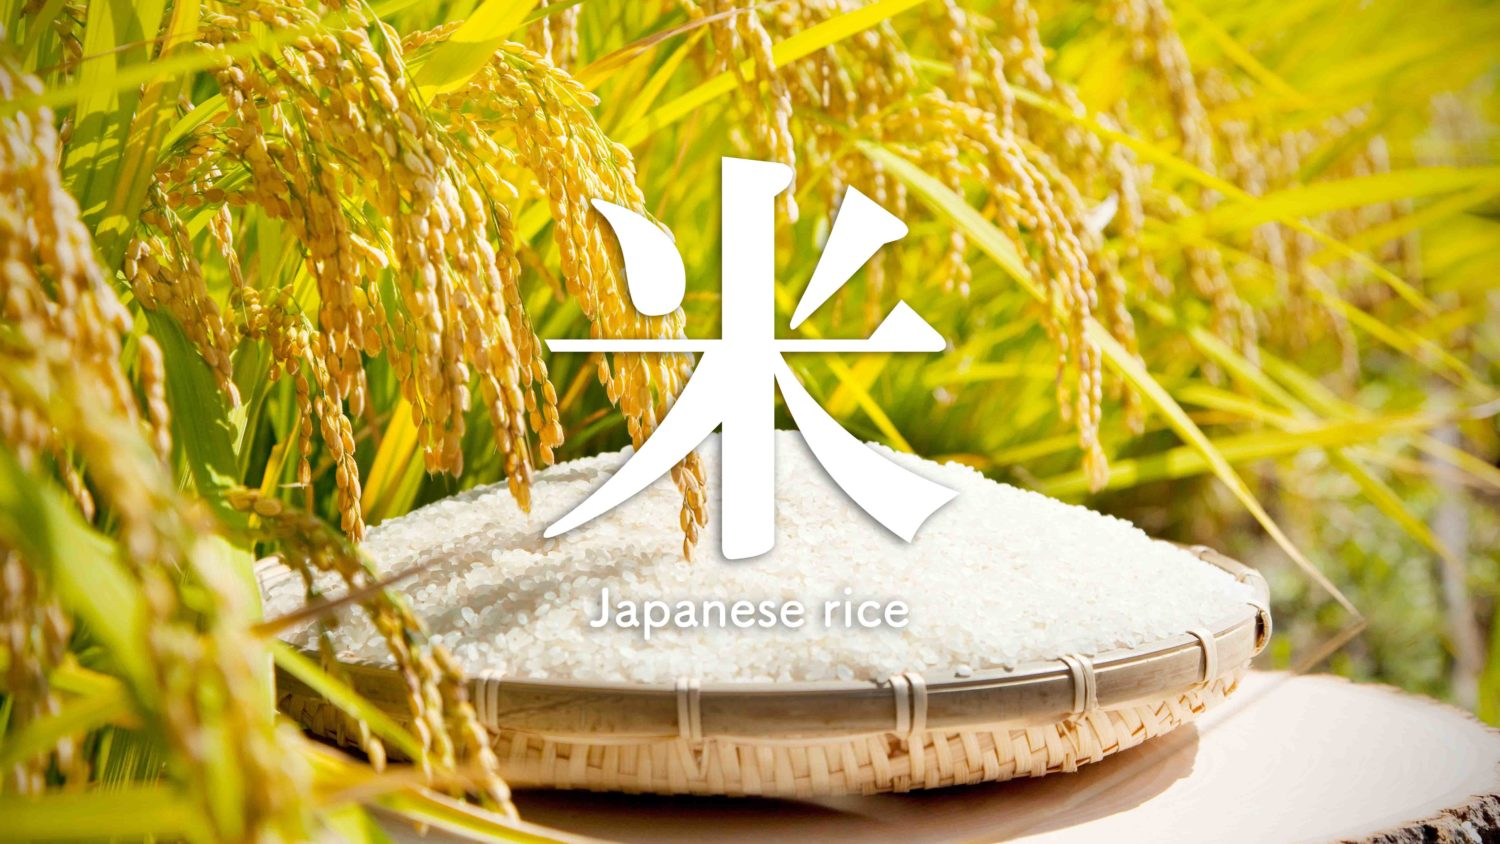 History of Japanese rice